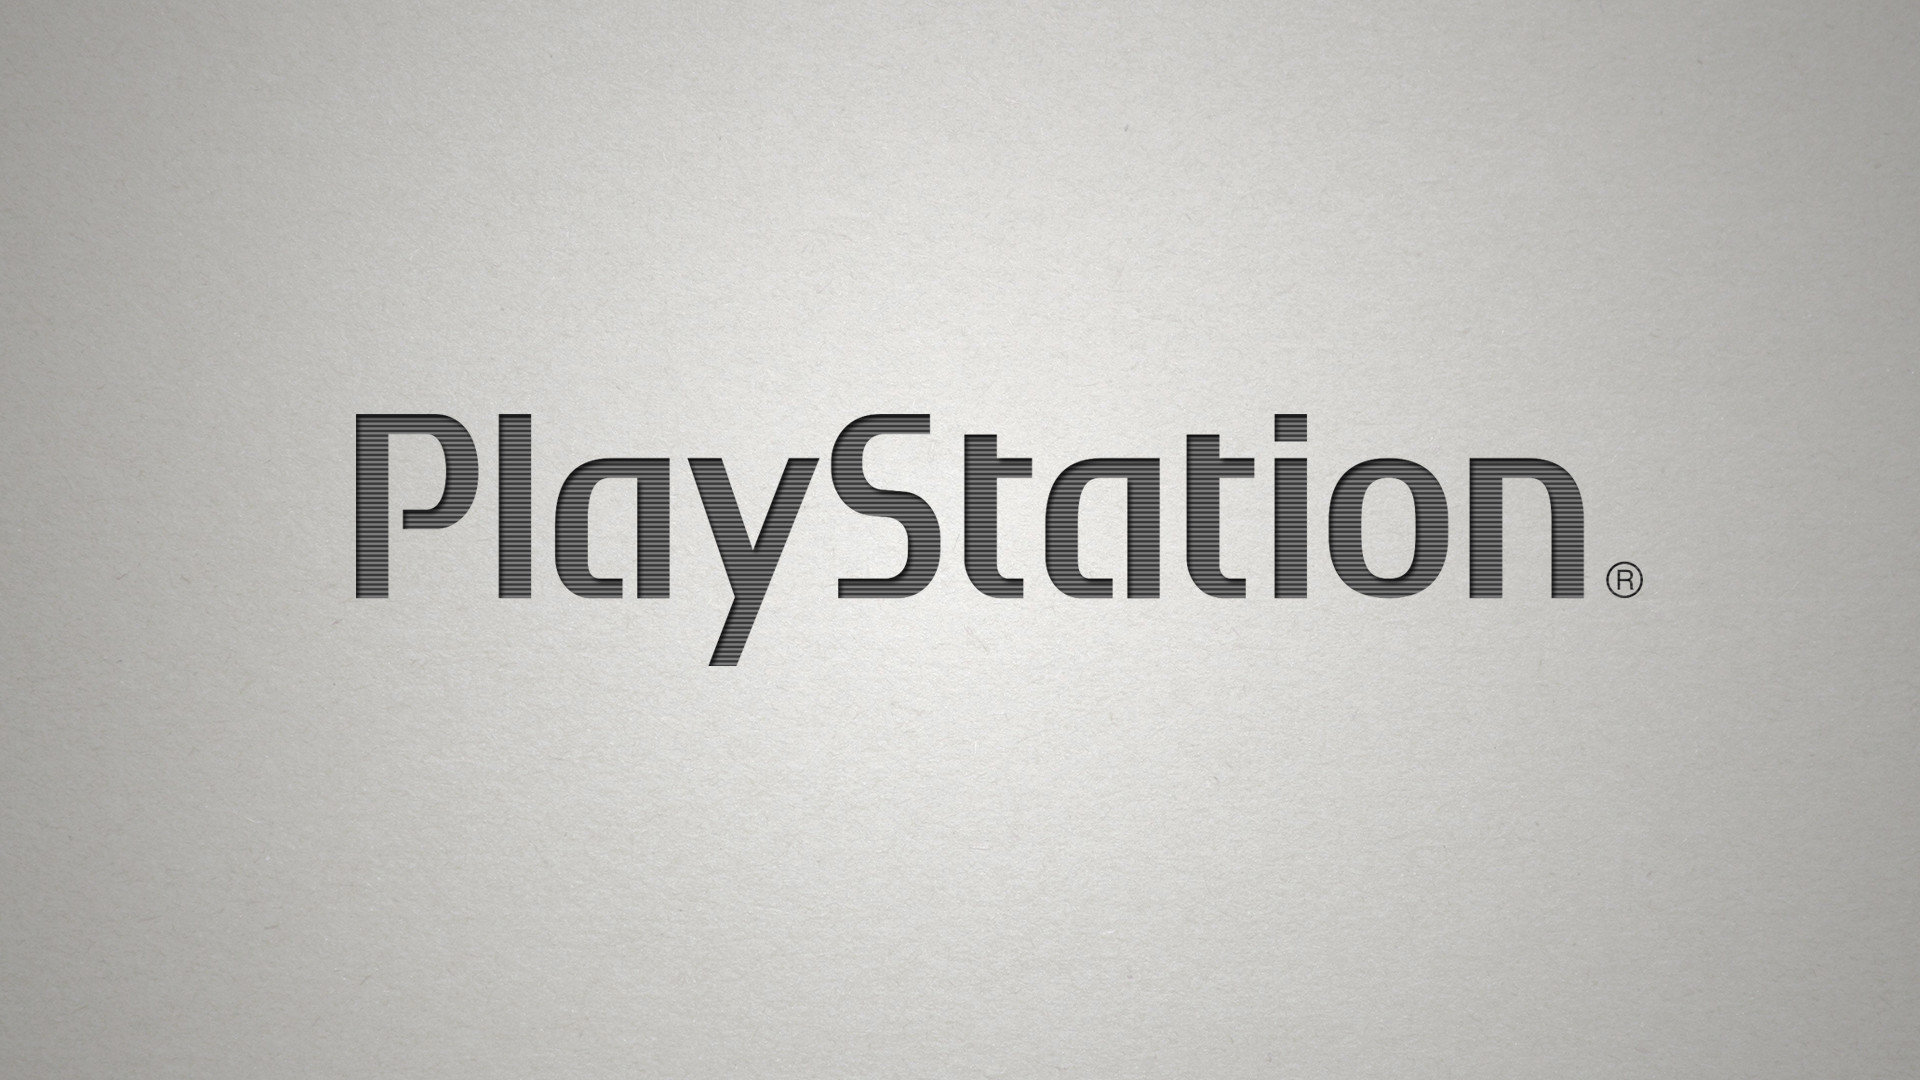 Playstation Wallpapers 1920x1080 Full Hd 1080p Desktop Backgrounds